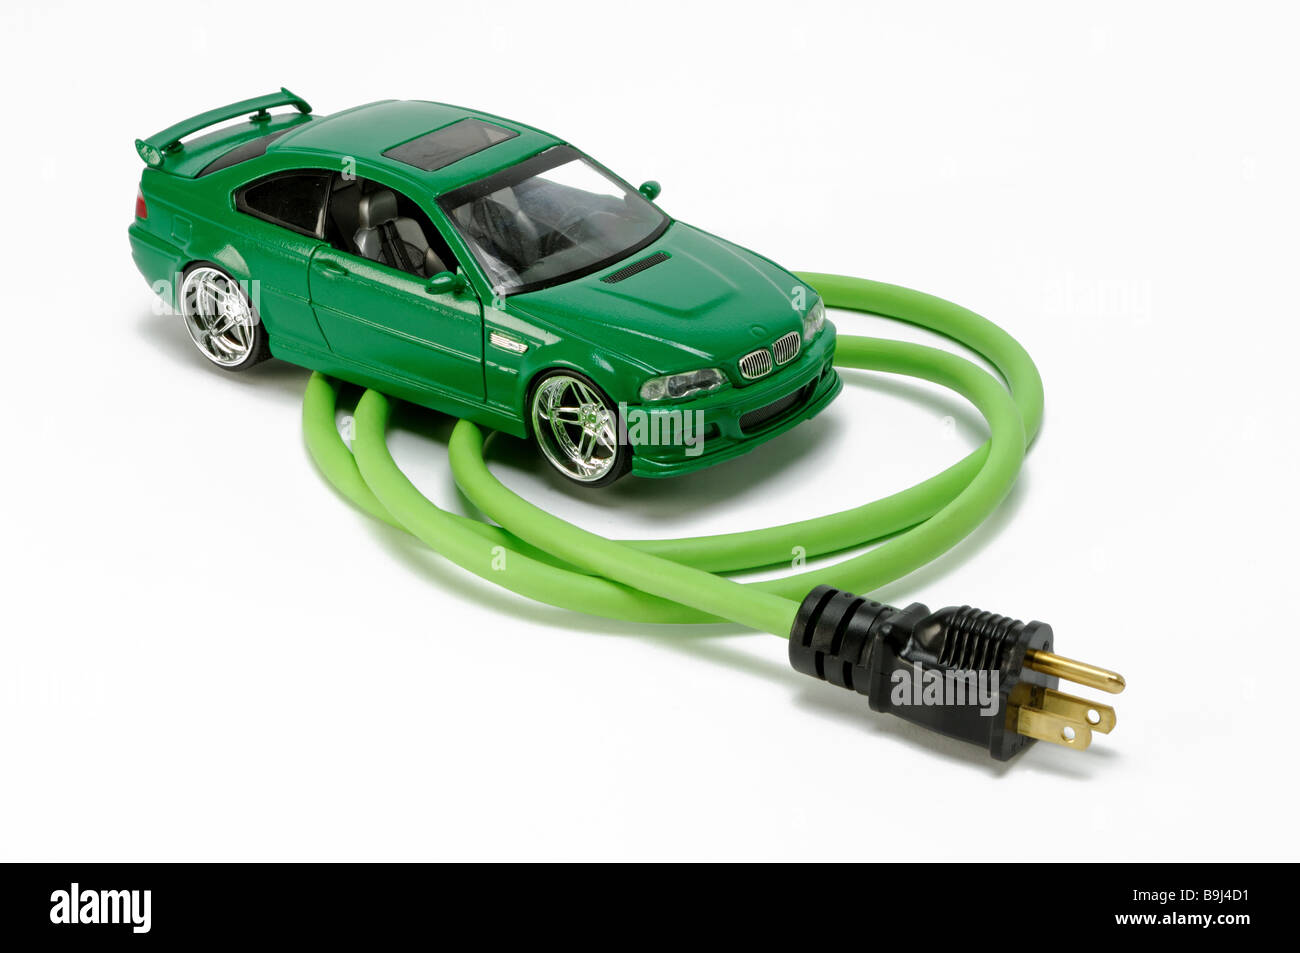 A green automobile vehicle car with a green electrical extension power cord section with one plug - Stock Image